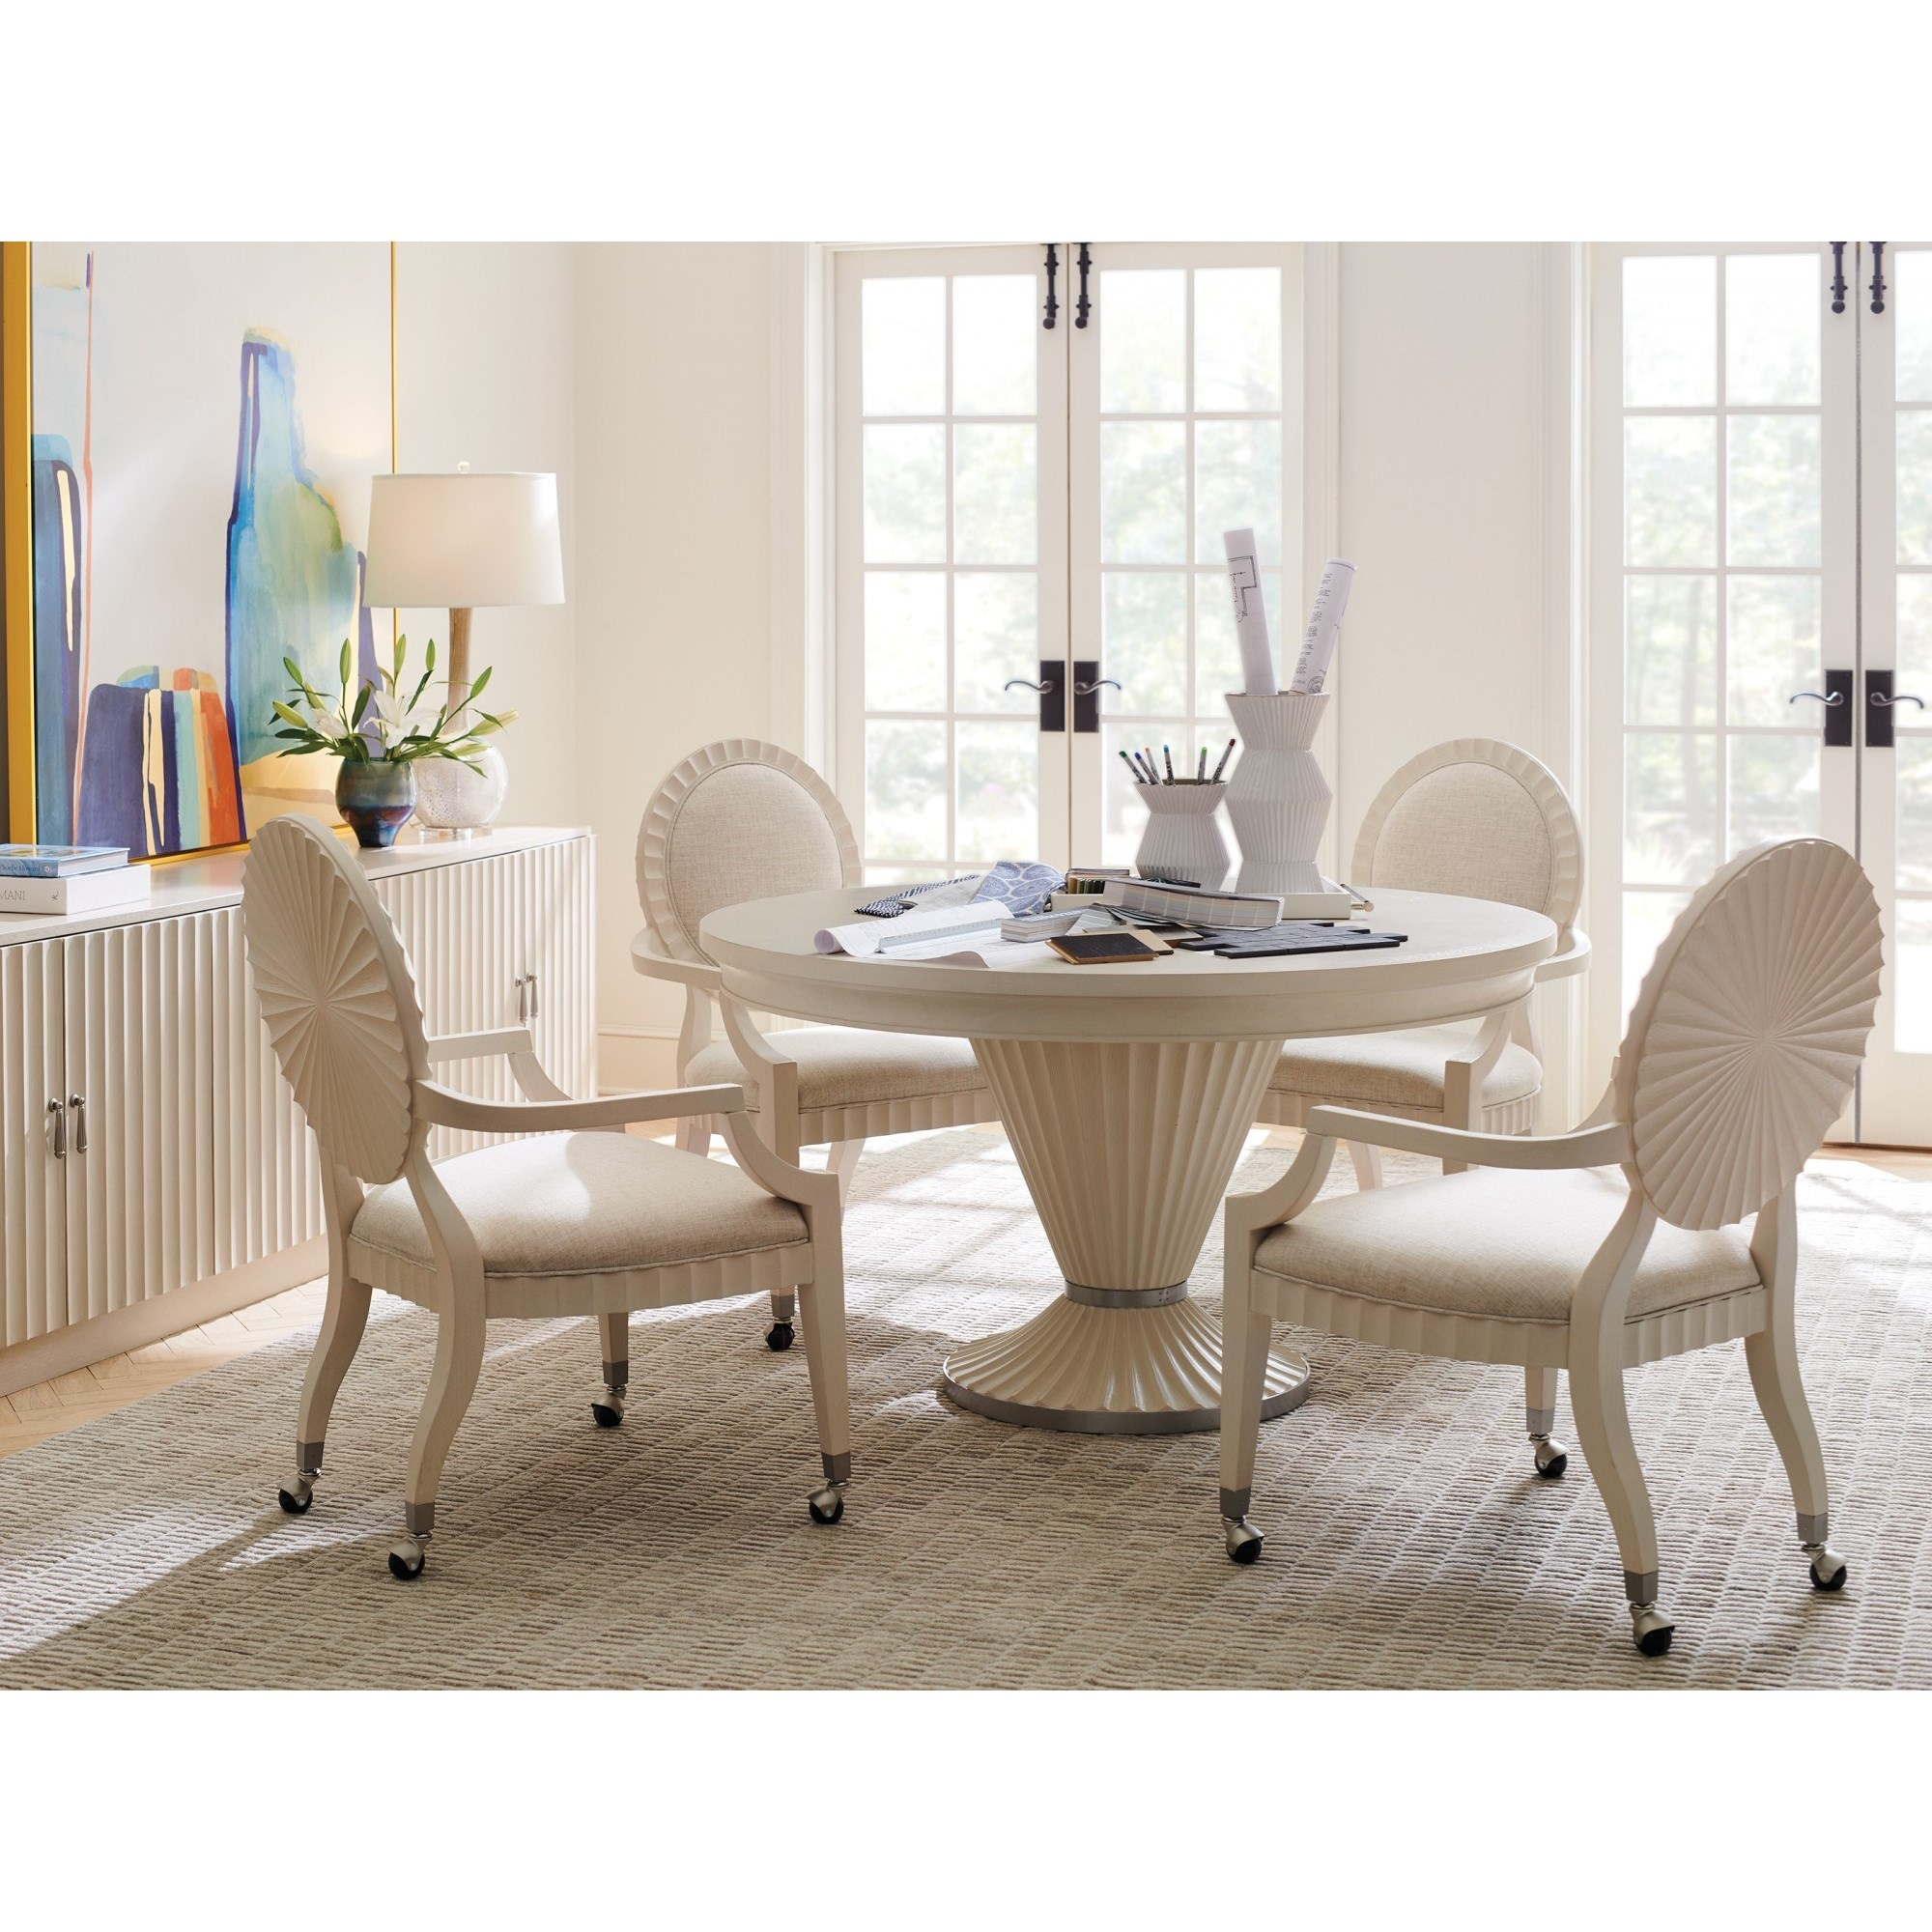 Cascades 5-Piece Game Table and Chair Set by Sligh at Baer's Furniture